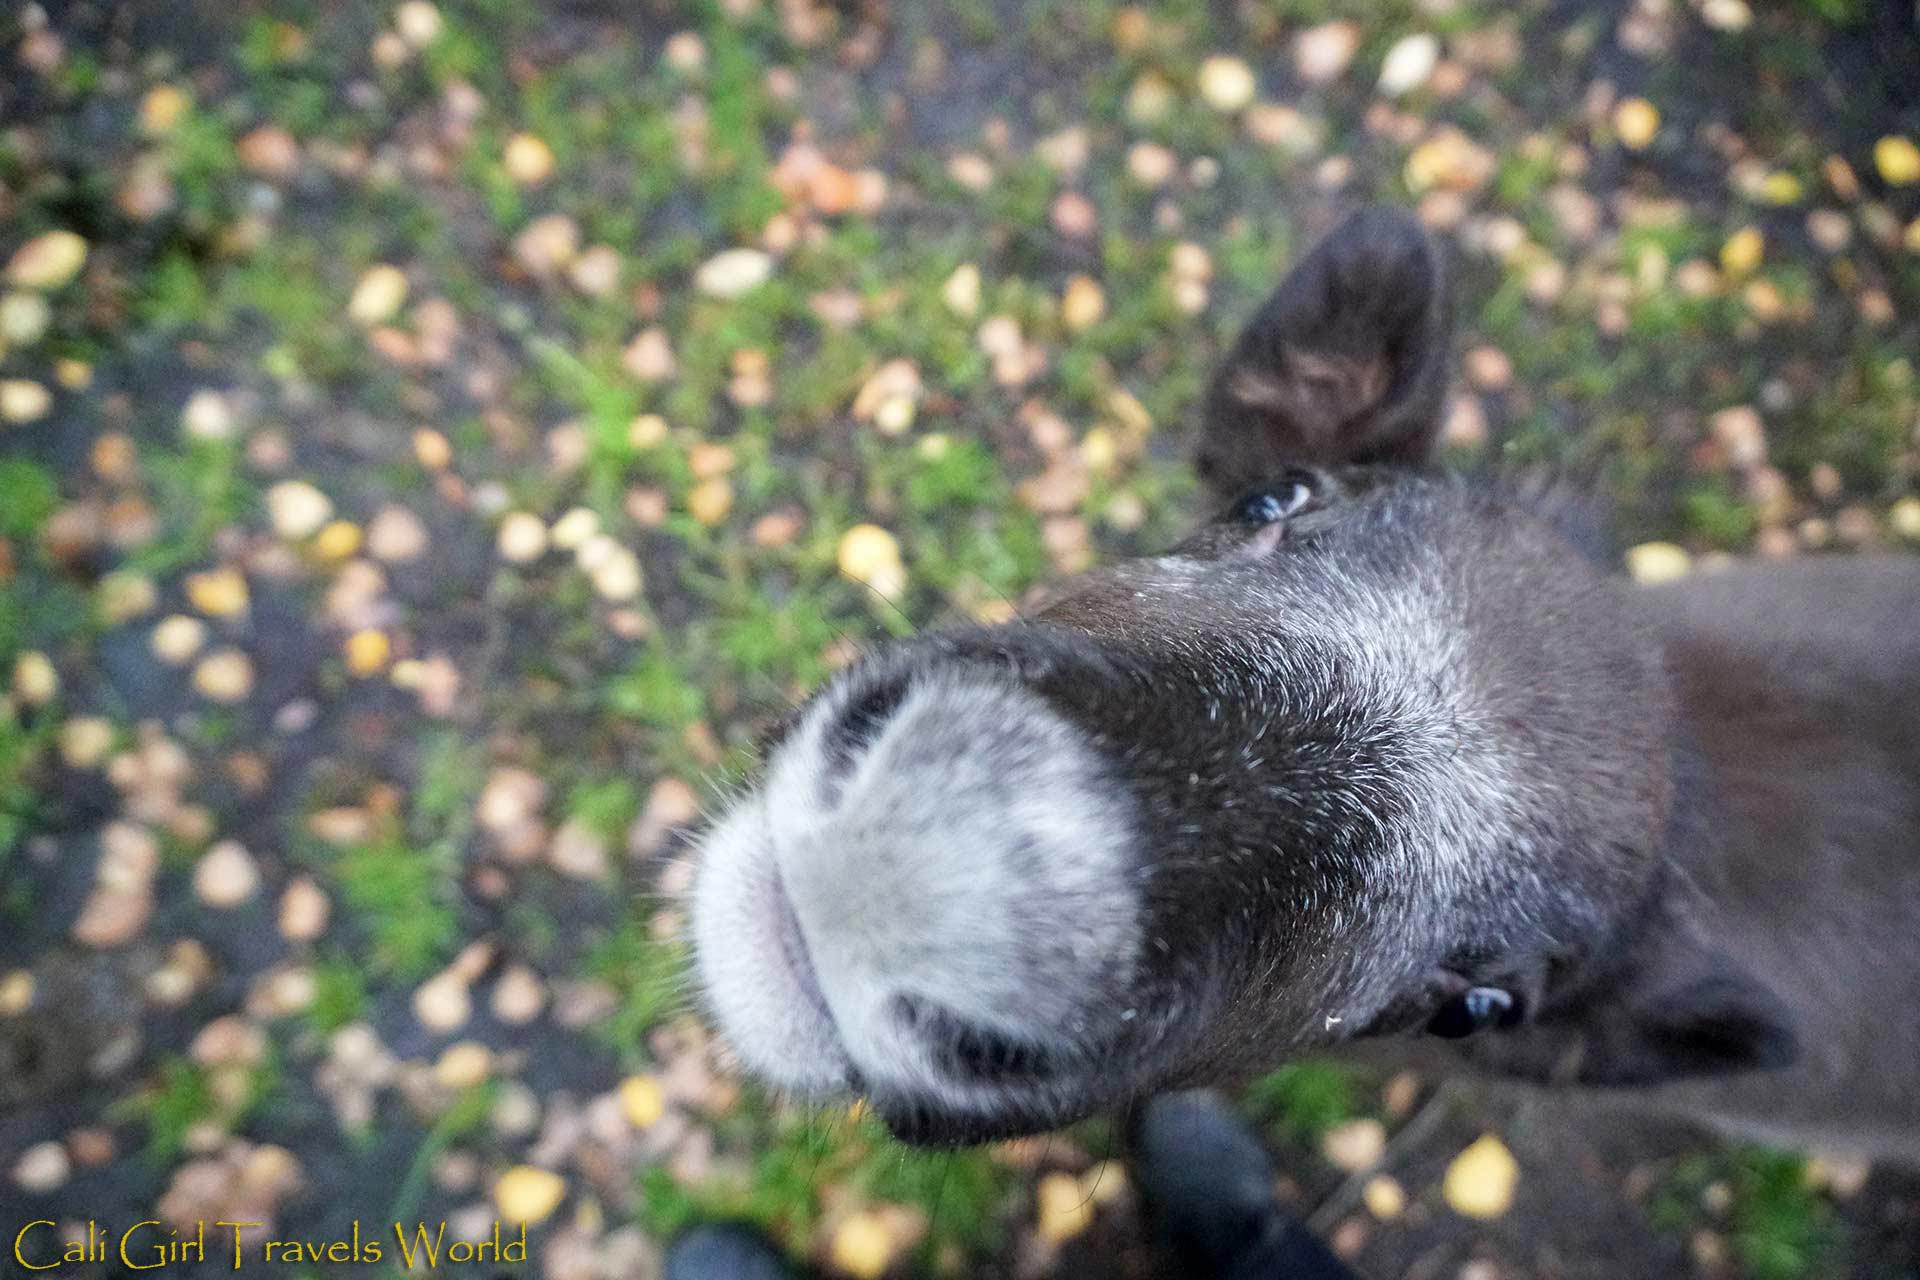 Little baby reindeer wanting to be fed fresh lichen that's in my pocket at Santa Claus Village in the arctic circle, Finland.